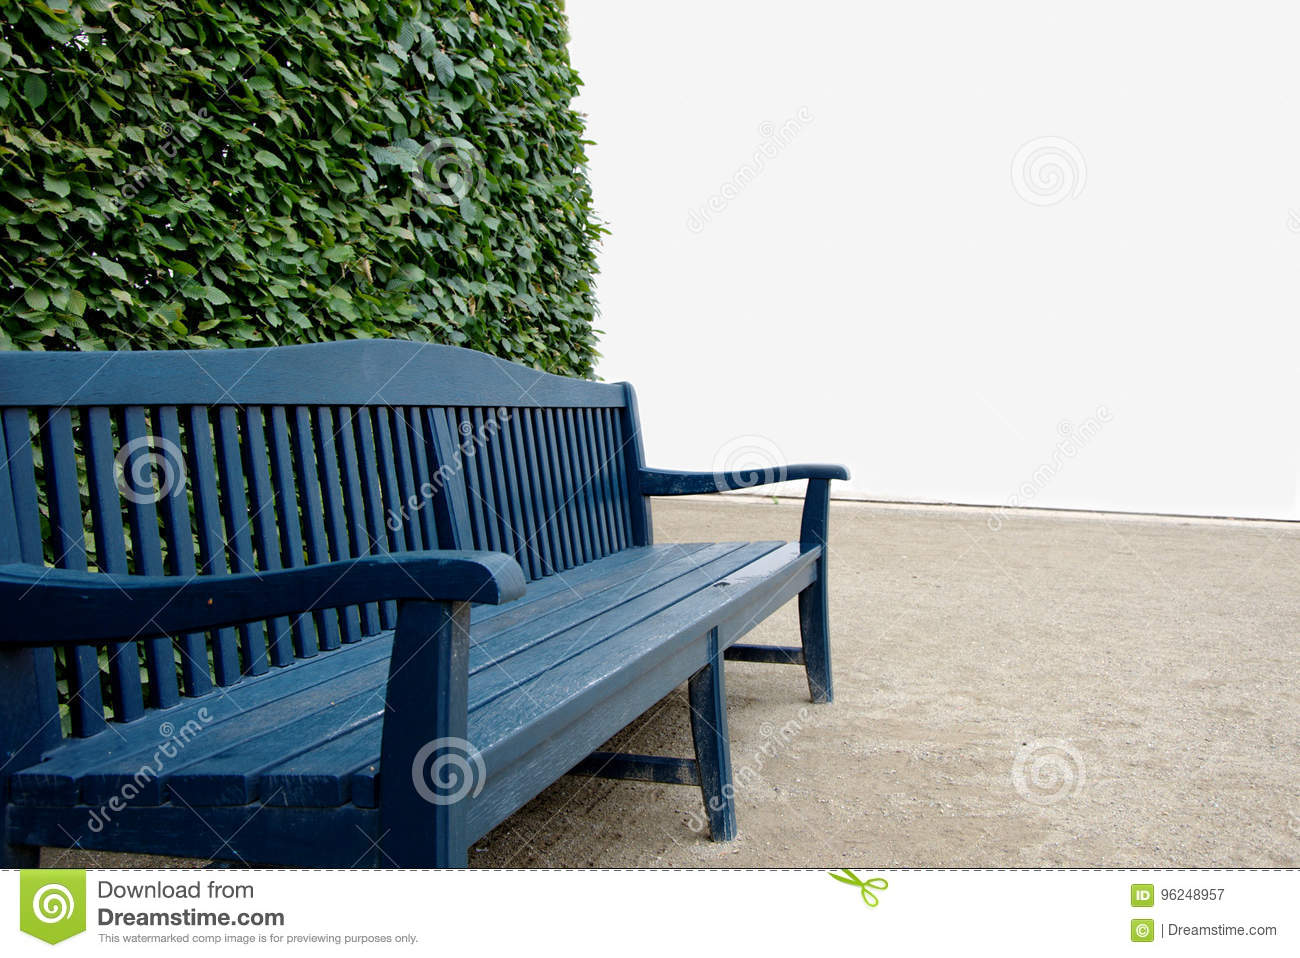 Astonishing Blue Wooden Bench With Green Bush And White Wall In The Gmtry Best Dining Table And Chair Ideas Images Gmtryco